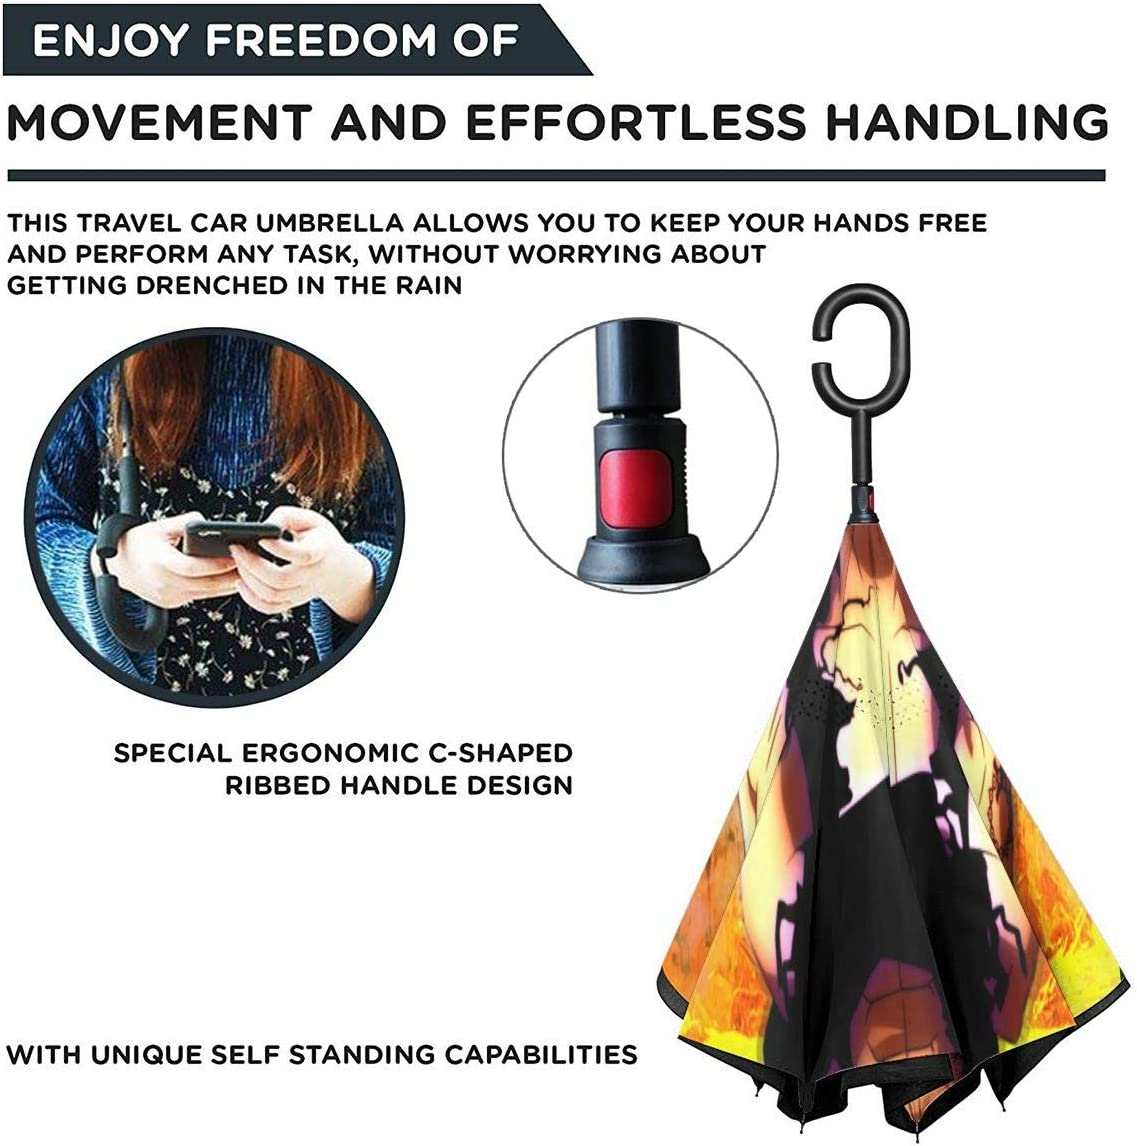 Windproof And Rainproof Double Folding Inverted Umbrella The Seven Deadly Sins Car Reverse Umbrella With C-Shaped Handle UV Protection Inverted Folding Umbrellas